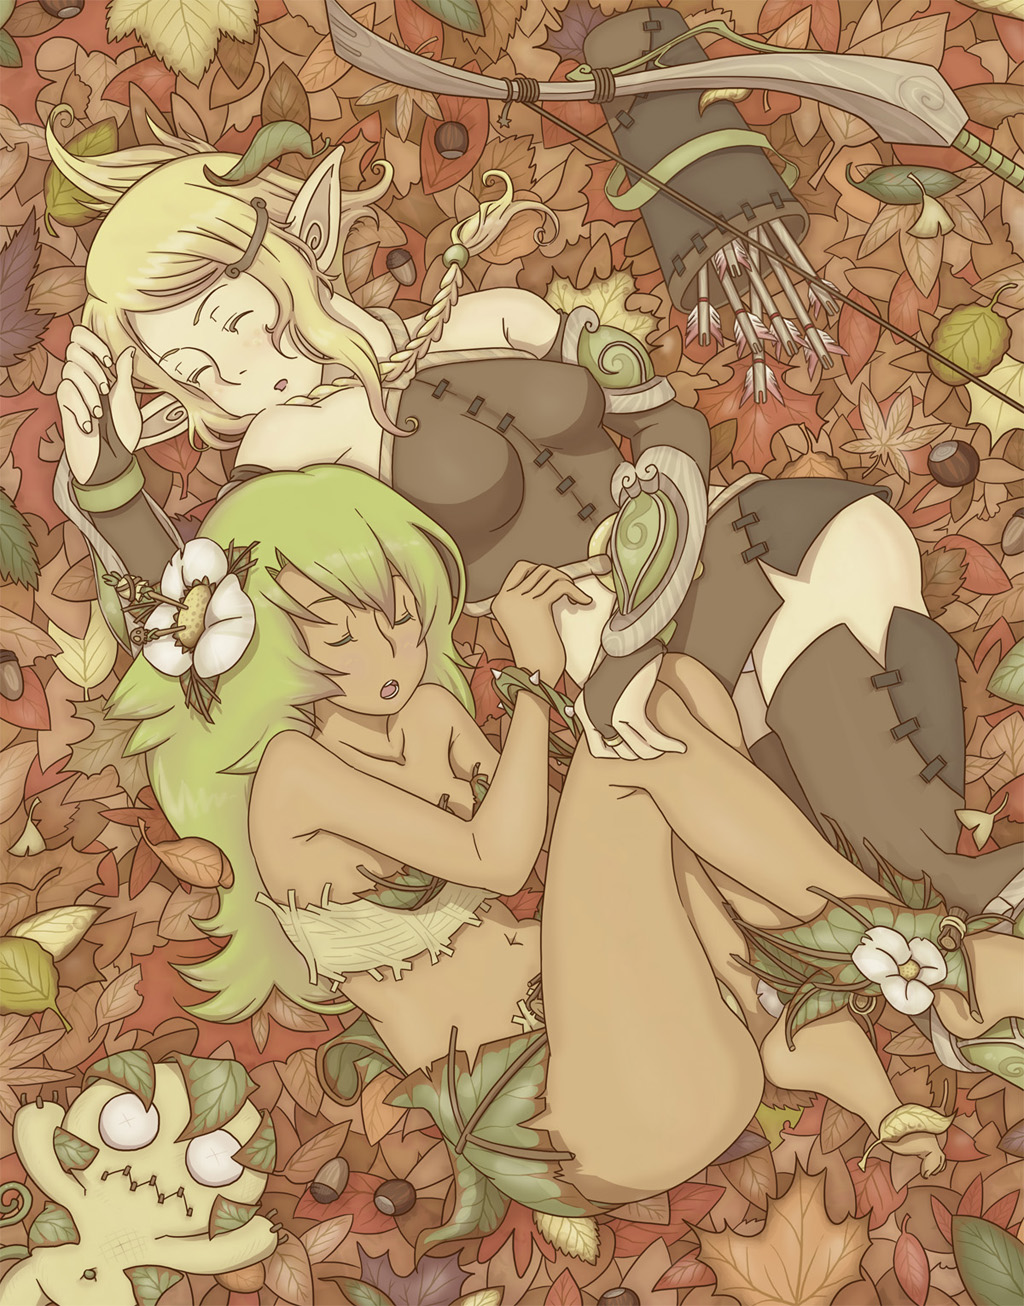 Wakfu girls in autumn by vinhnyu